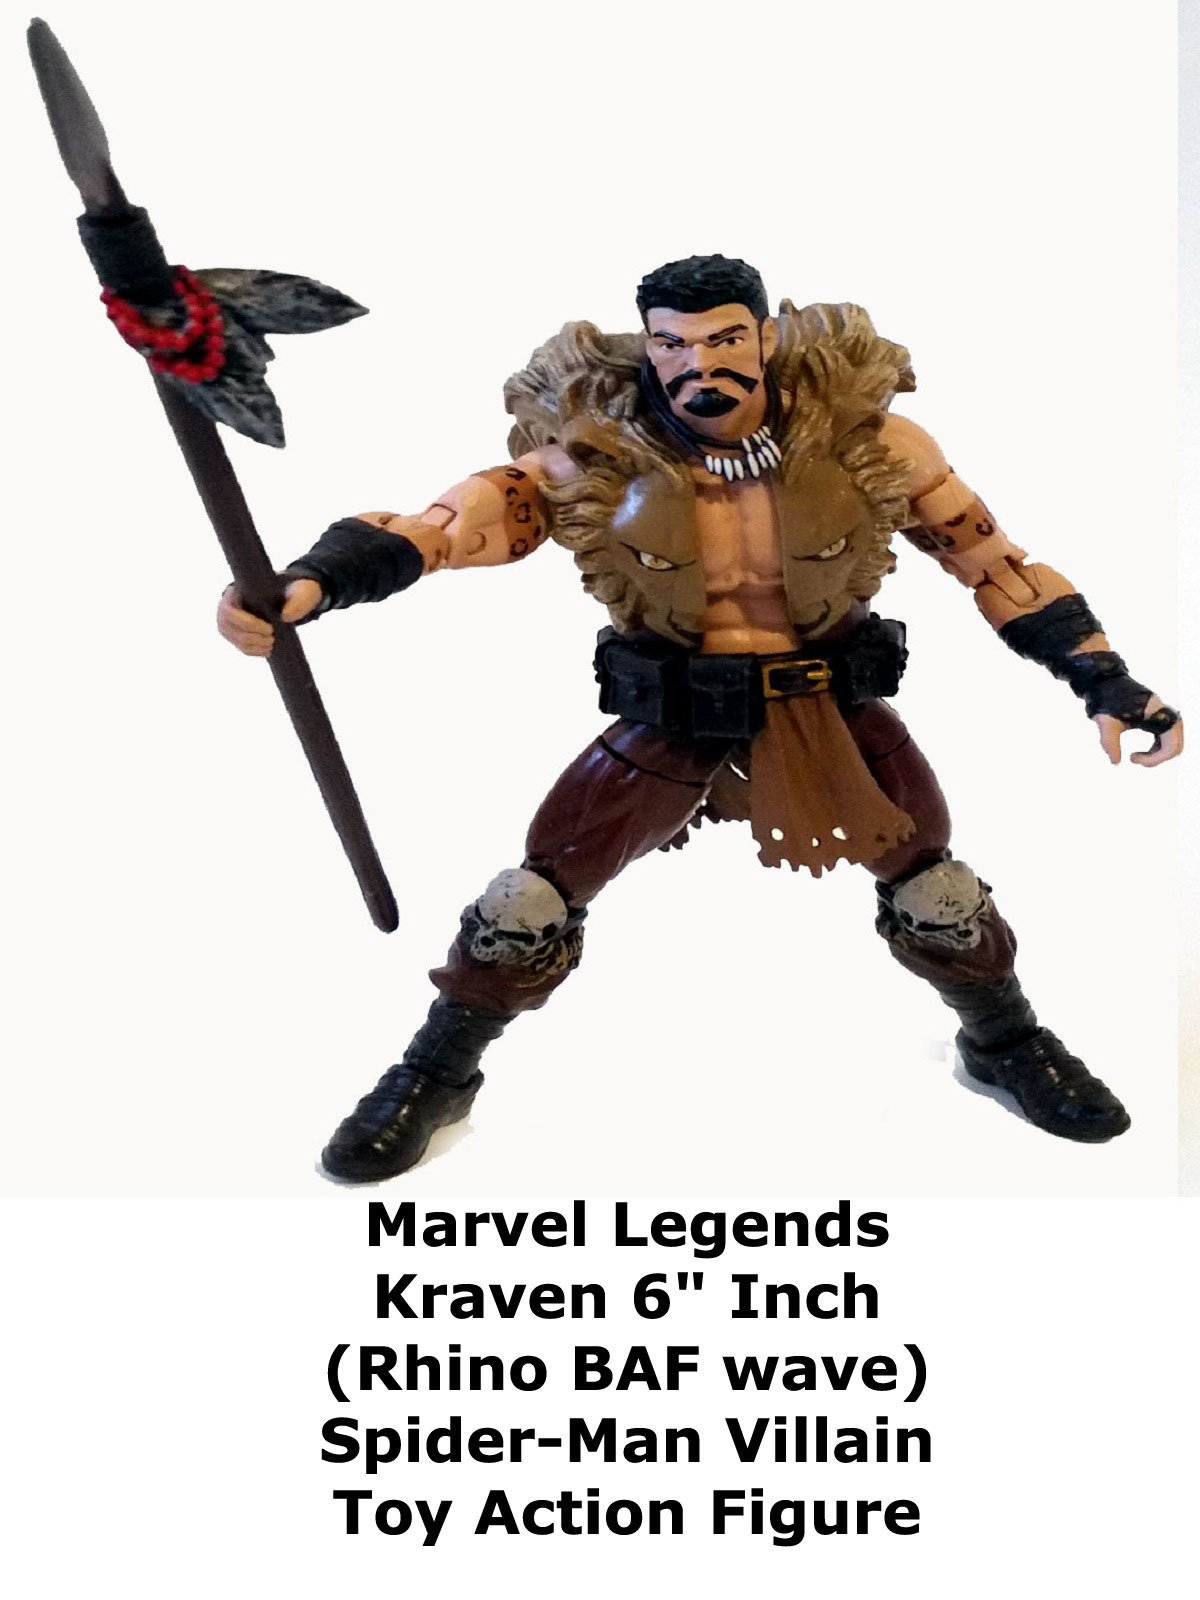 "Review: Marvel Legends Kraven 6"" Inch (Rhino BAF wave) Spider-Man Villain Toy Action Figure"